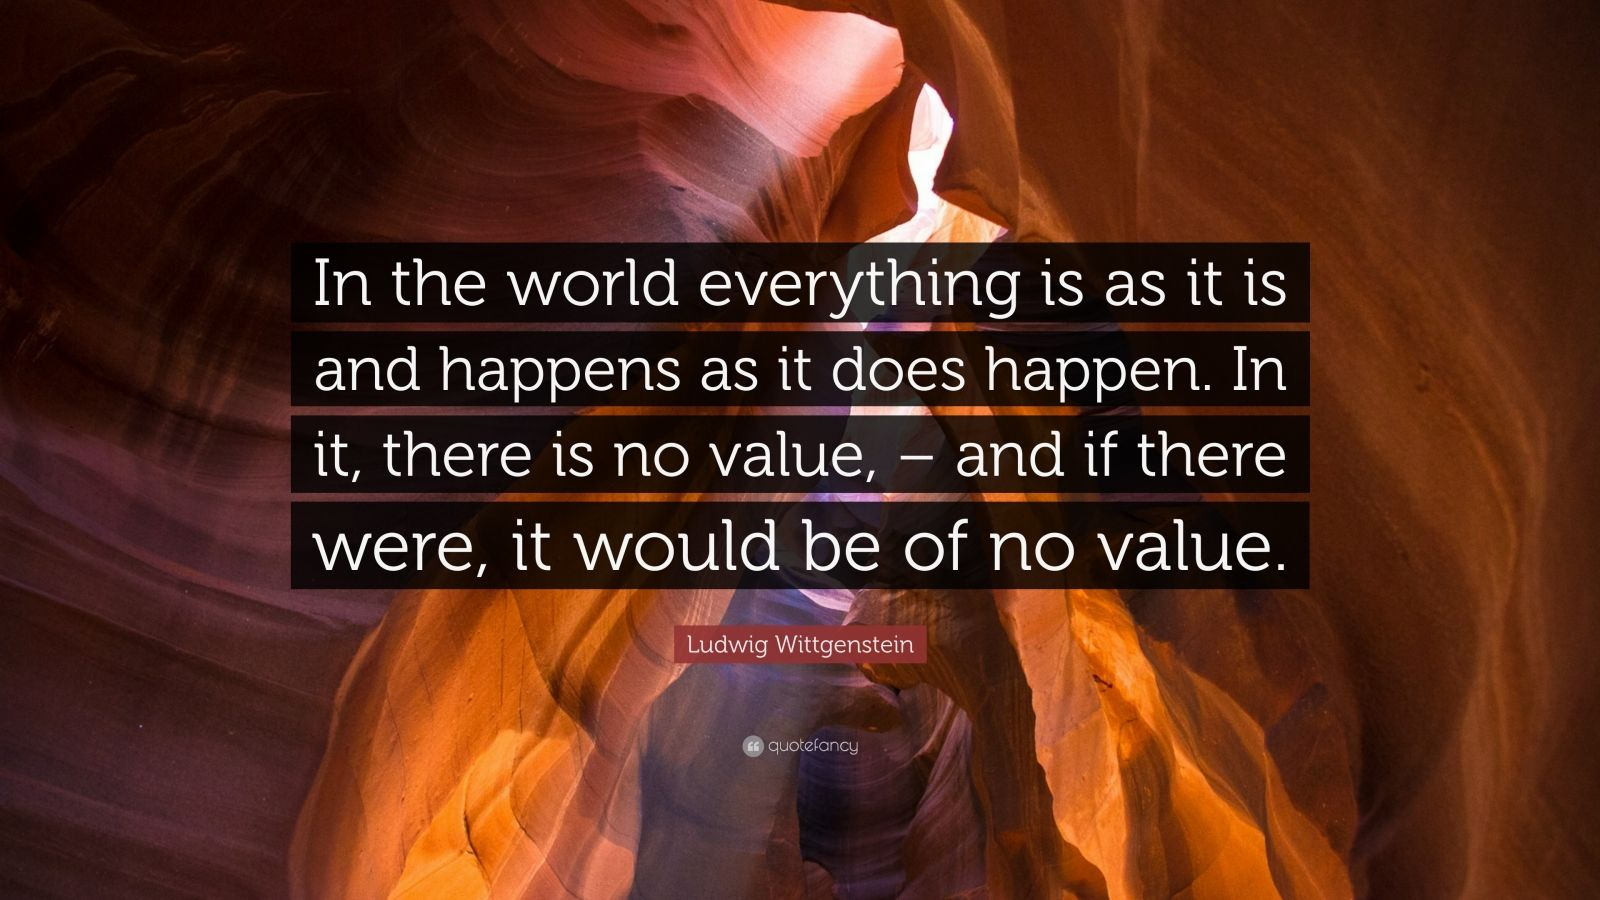 """Ludwig Wittgenstein Quote: """"In the world everything is as it is and happens as it does happen. In it, there is no value, – and if there were, it would be of no value."""""""